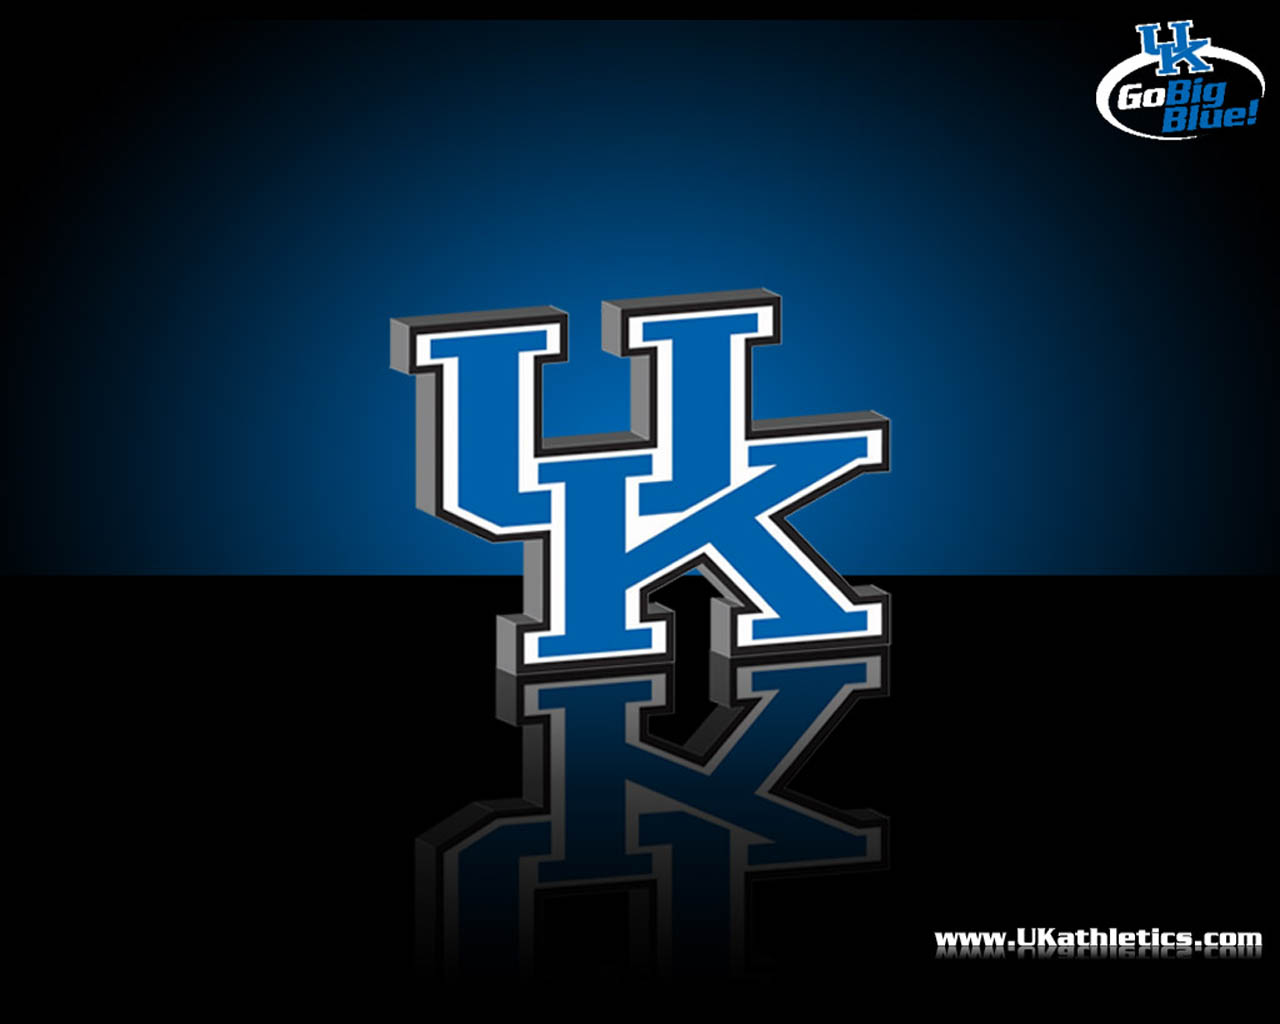 Kentucky Wildcats Official Athletic Site   Traditions 1280x1024